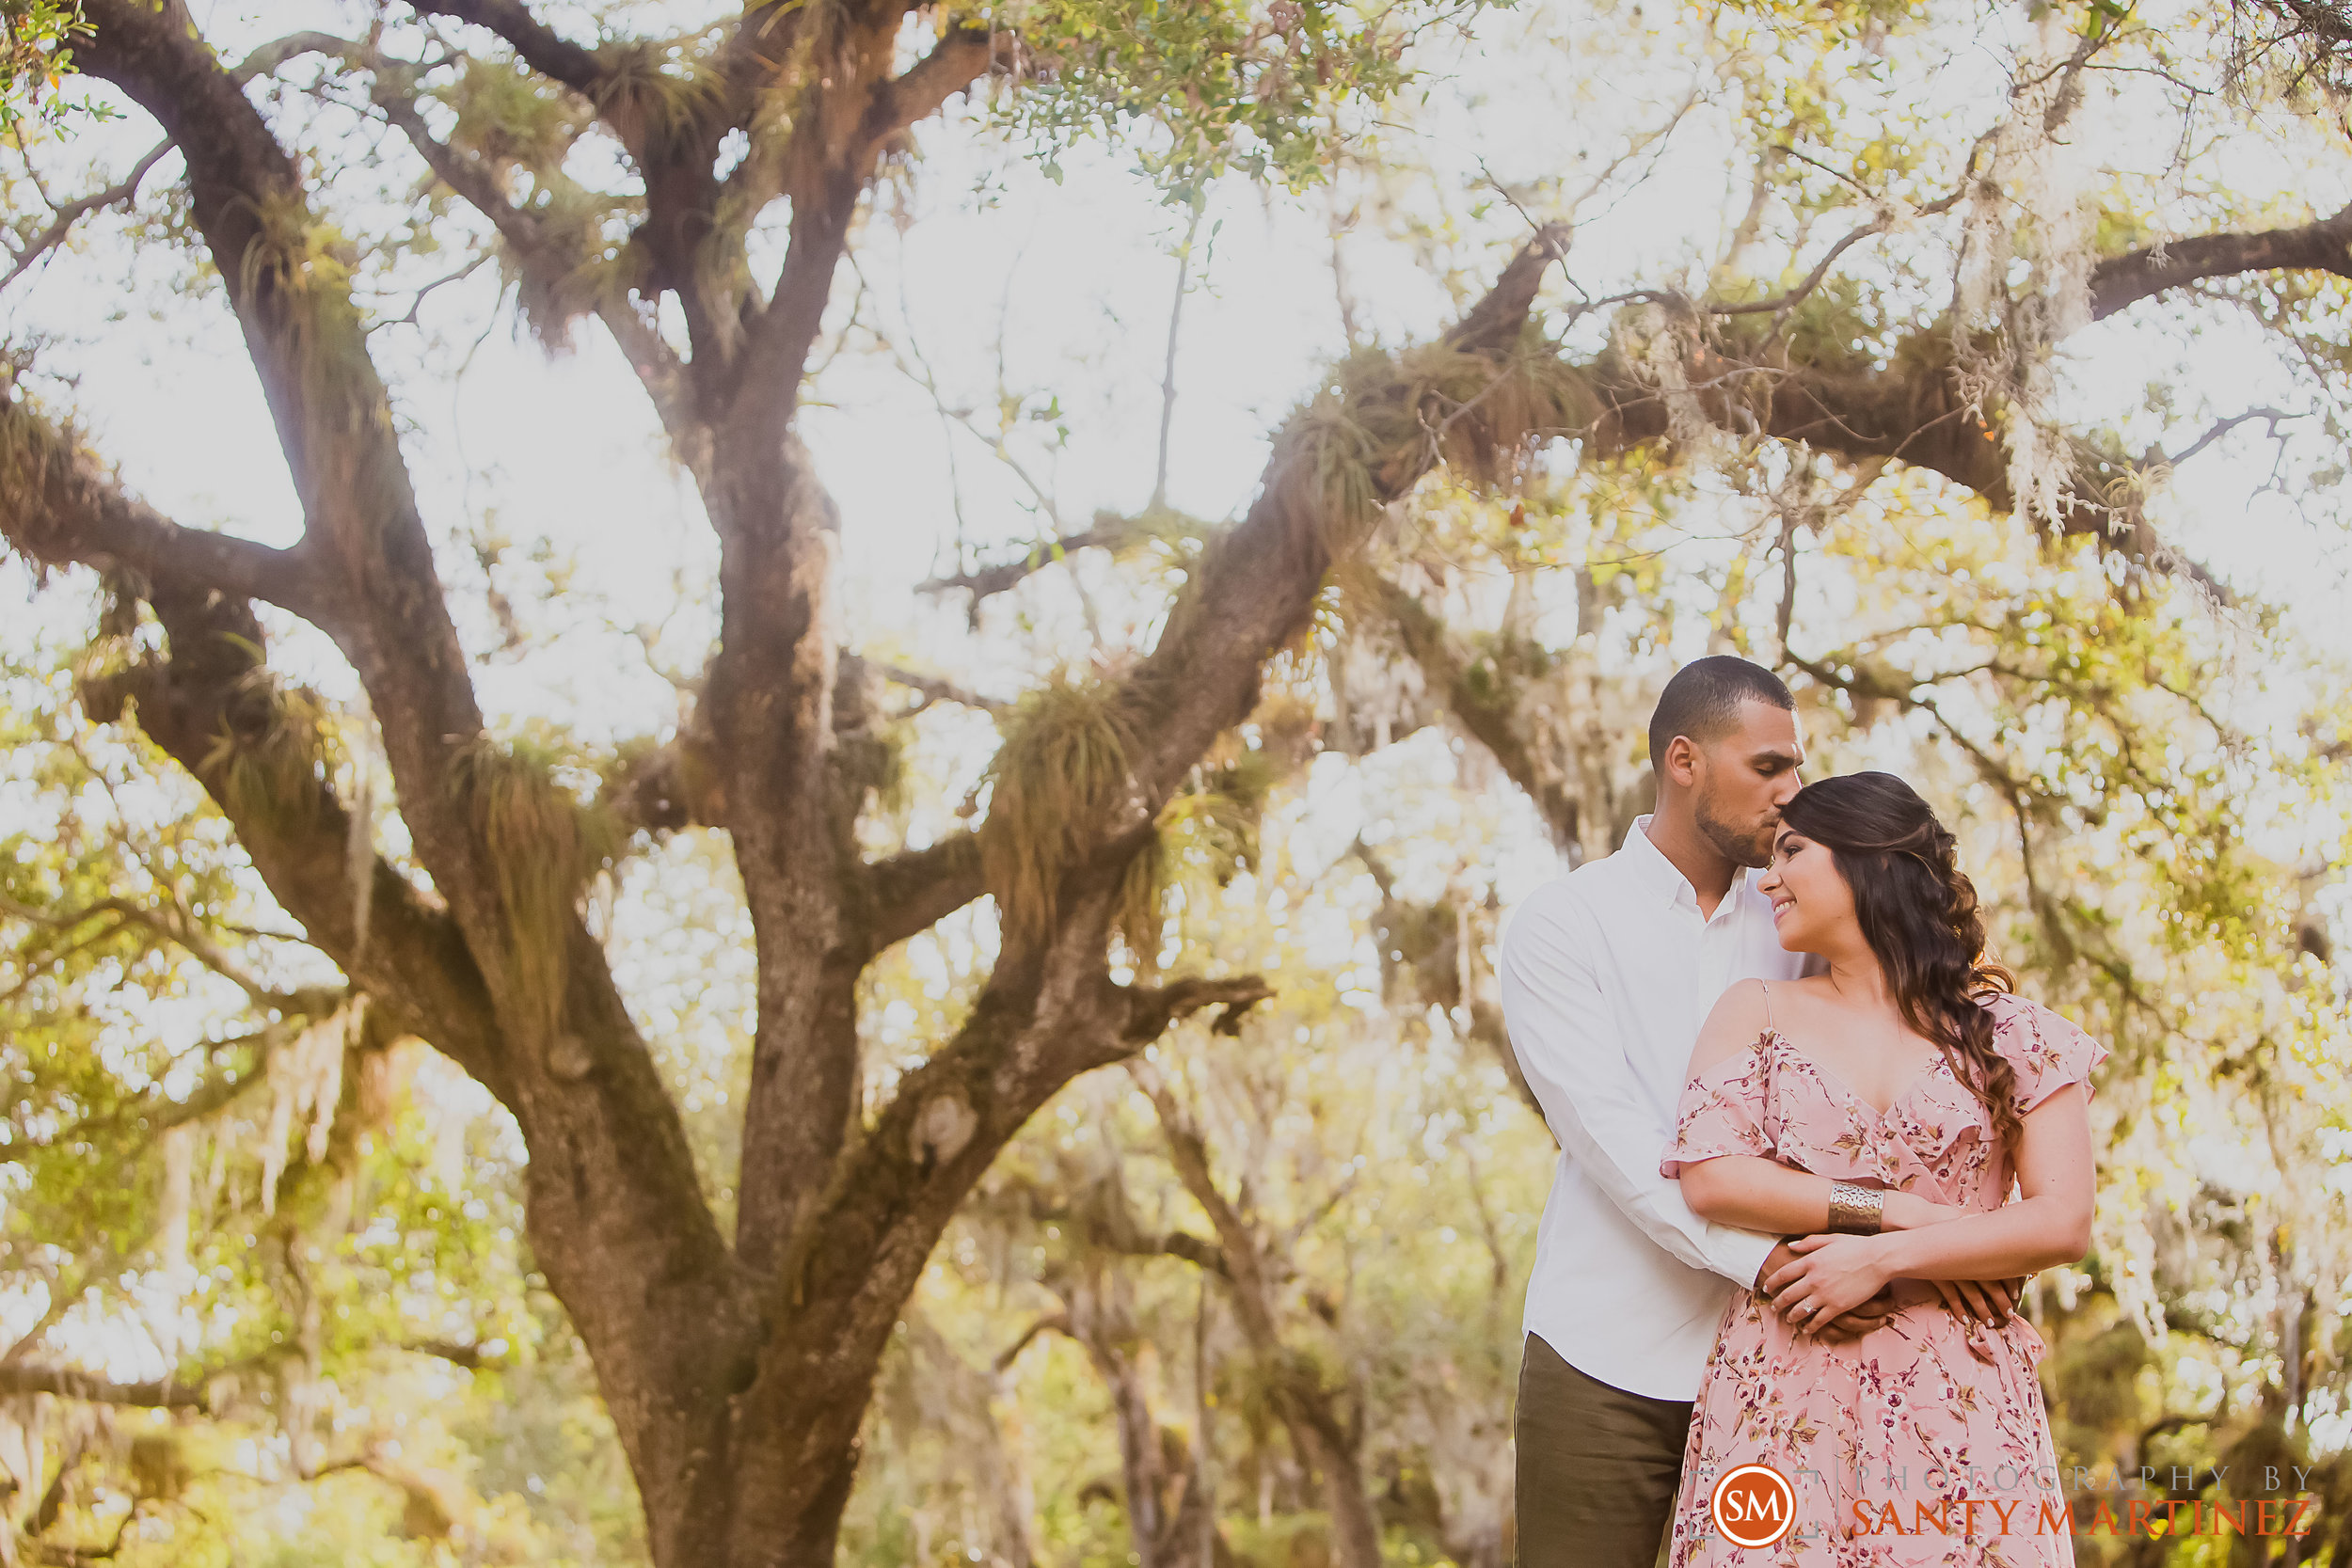 Engagement Session Matheson Hammock Park - Photography by Santy Martinez-11.jpg